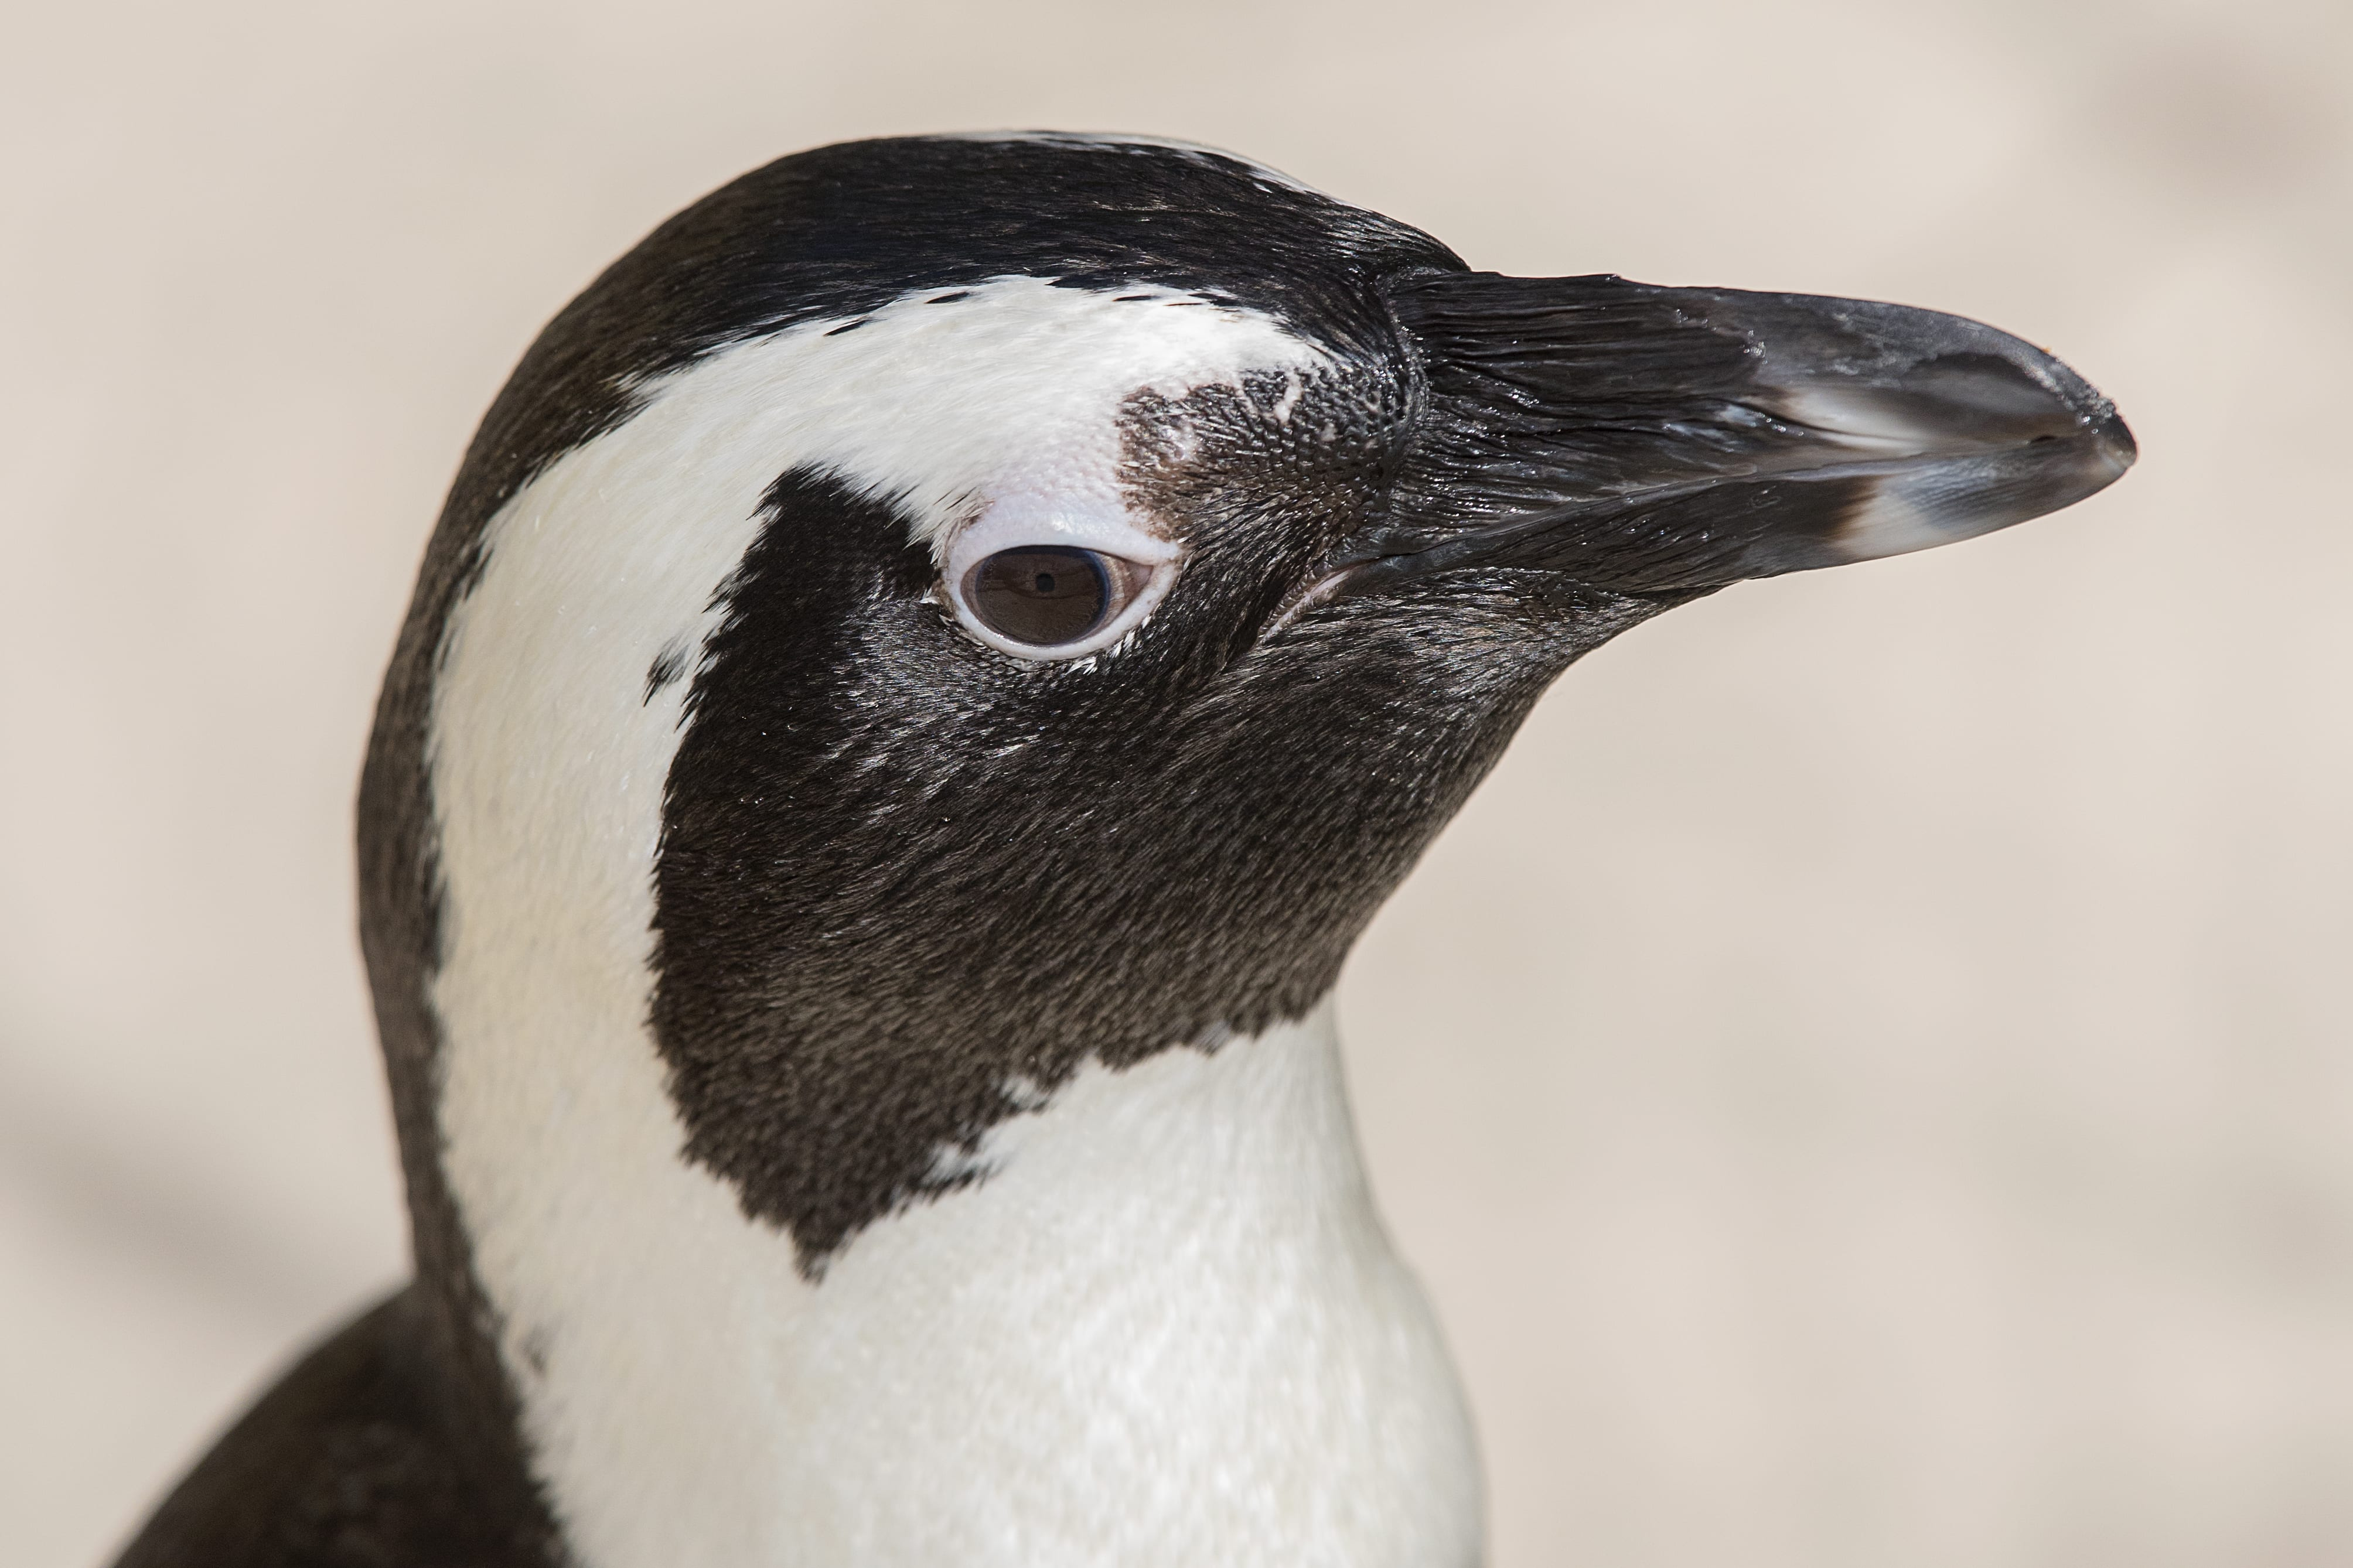 African Penguin Zootampa At Lowry Park